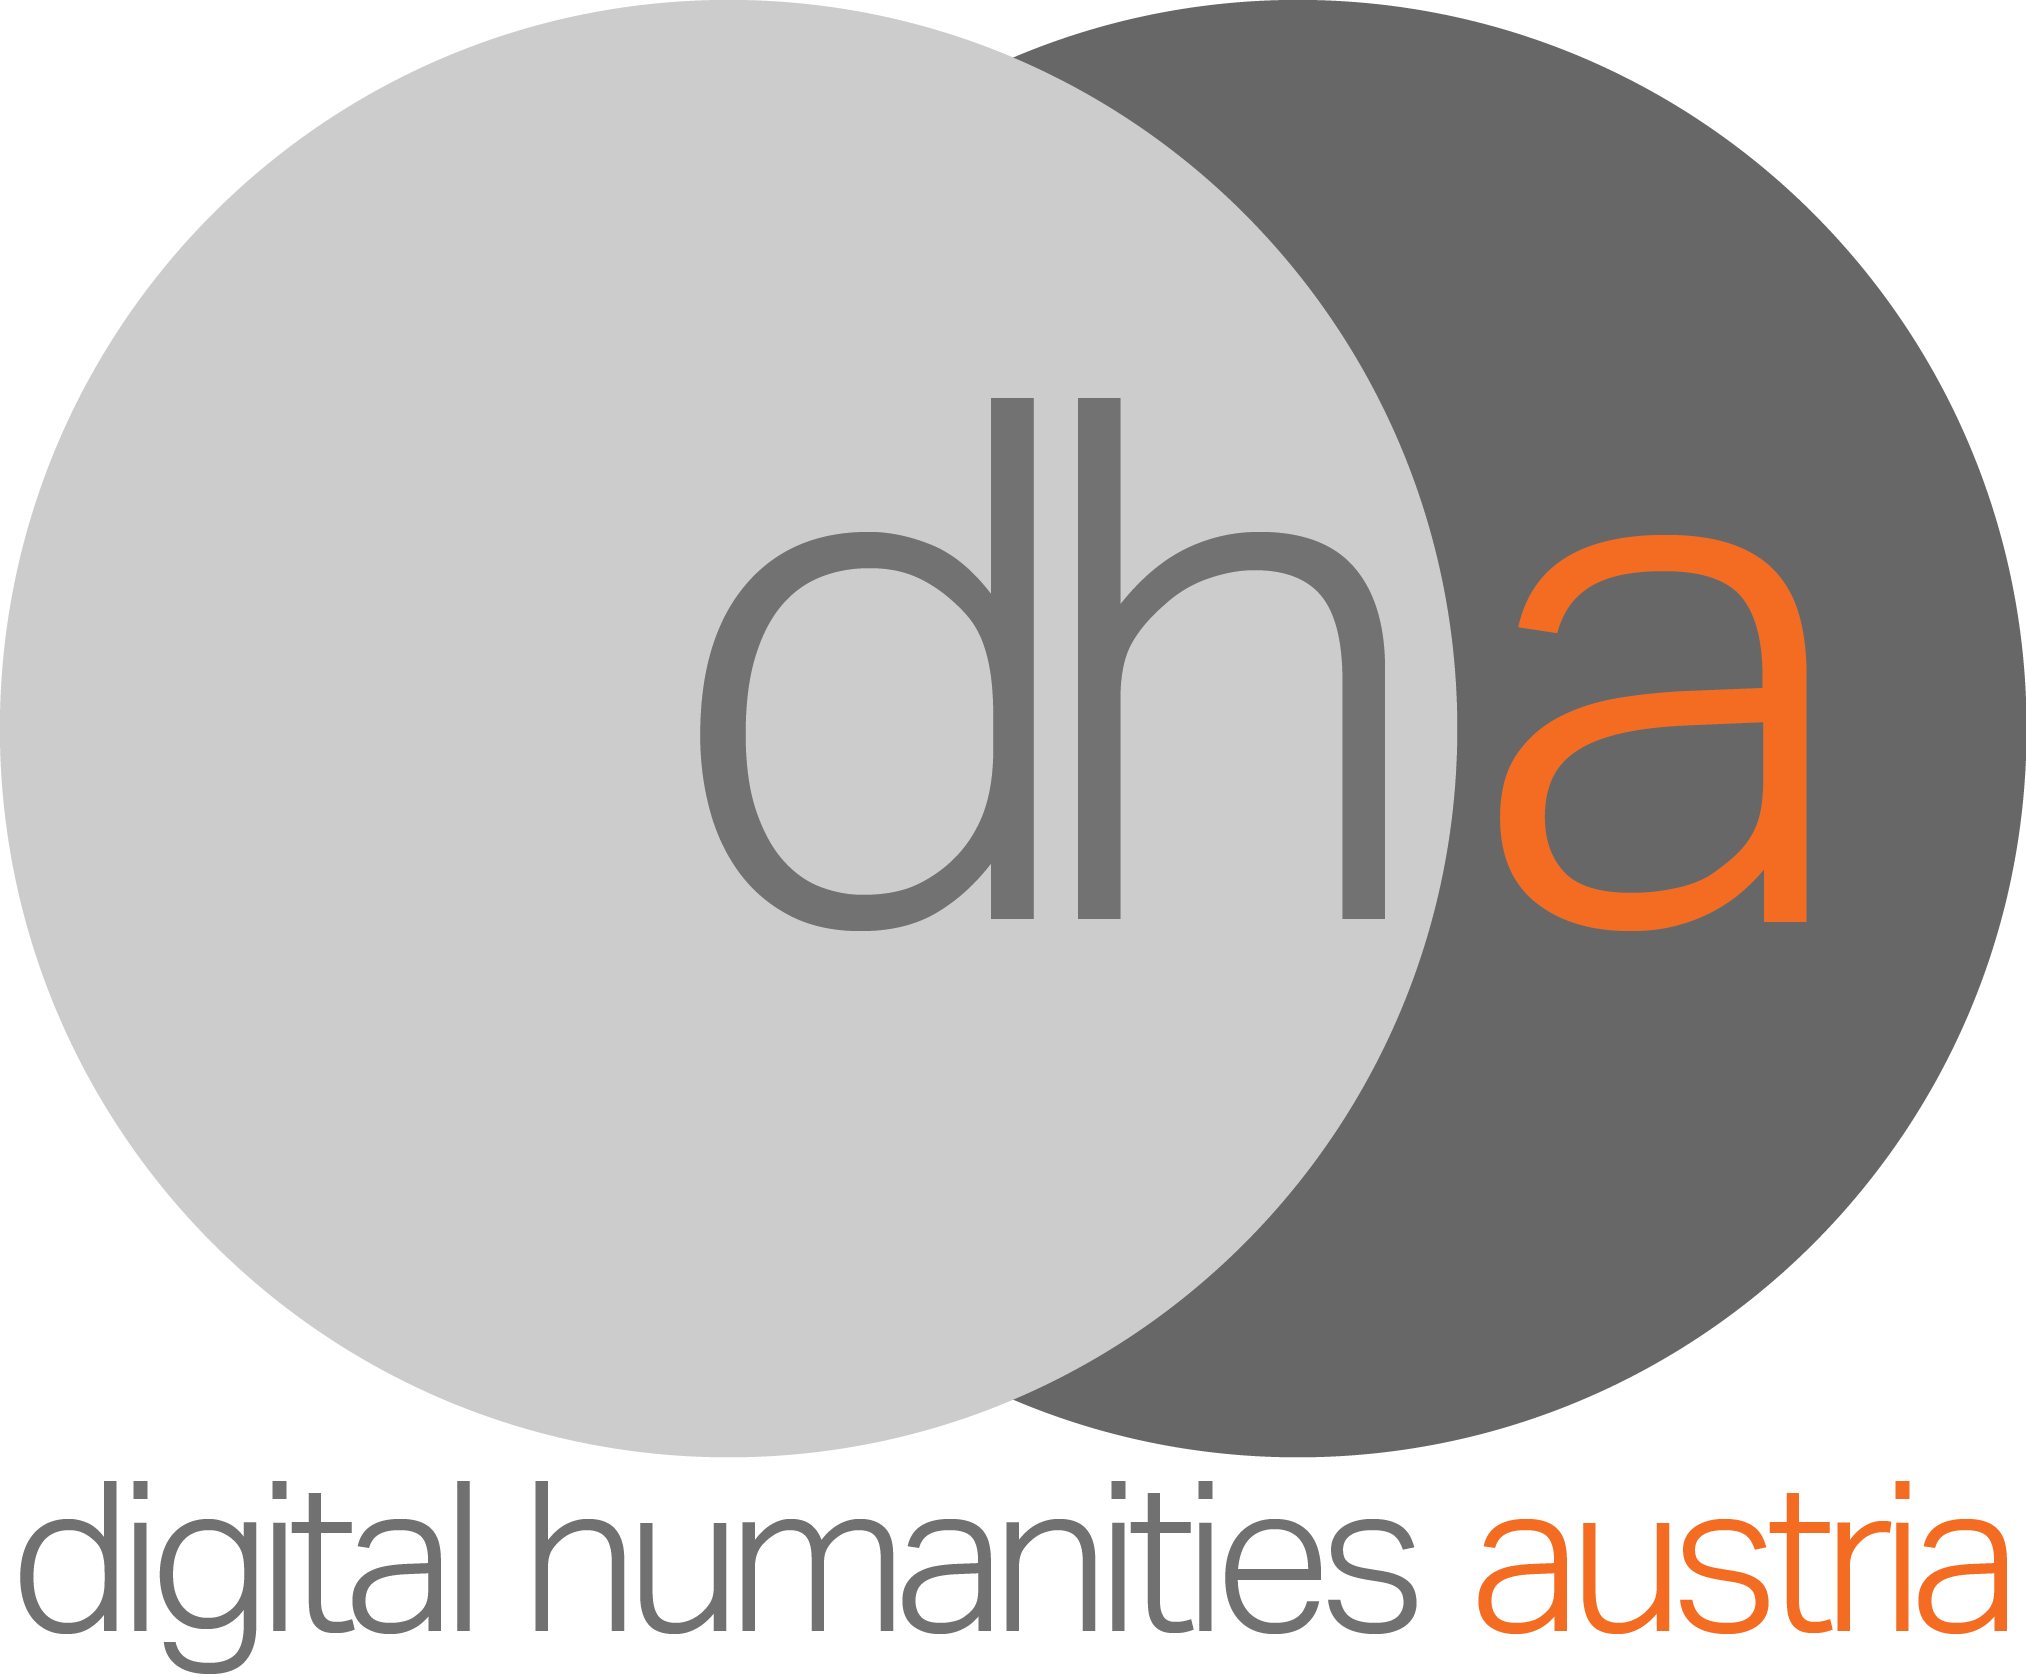 Logo digital humanities austria